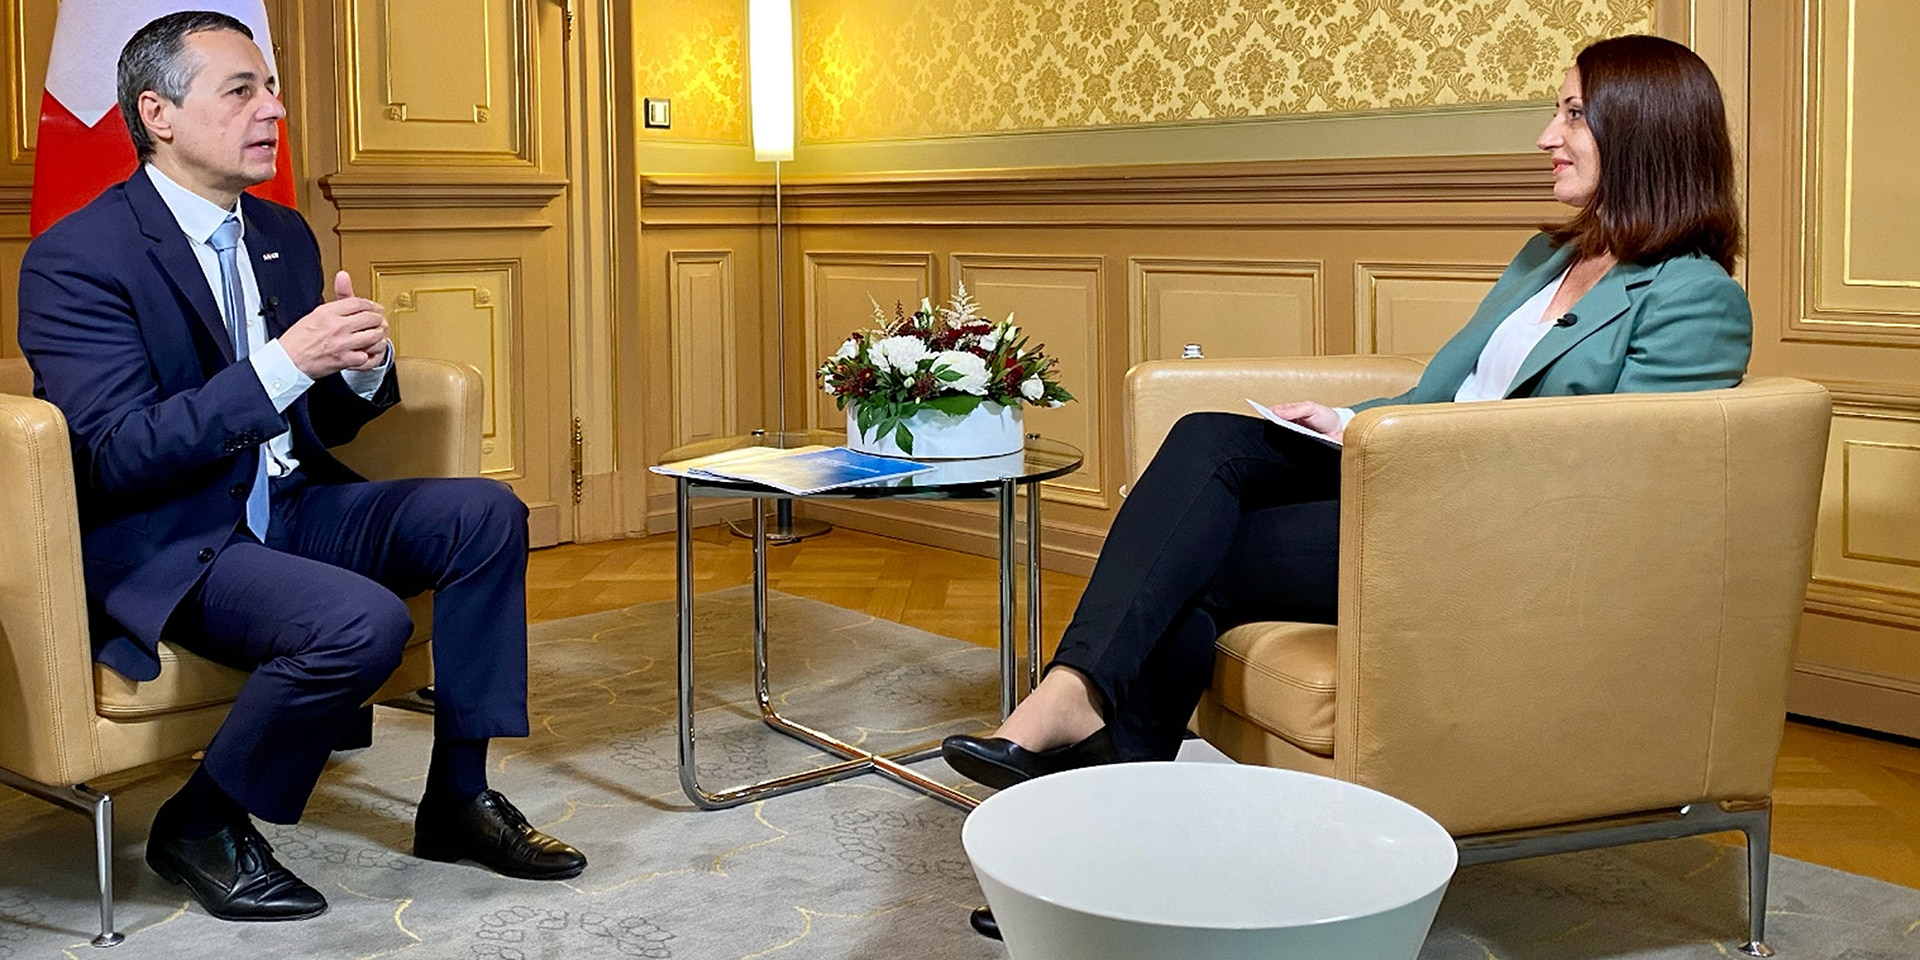 Federal Councillor Ignazio Cassis sits in a chair and talks to the presenter during an interview.